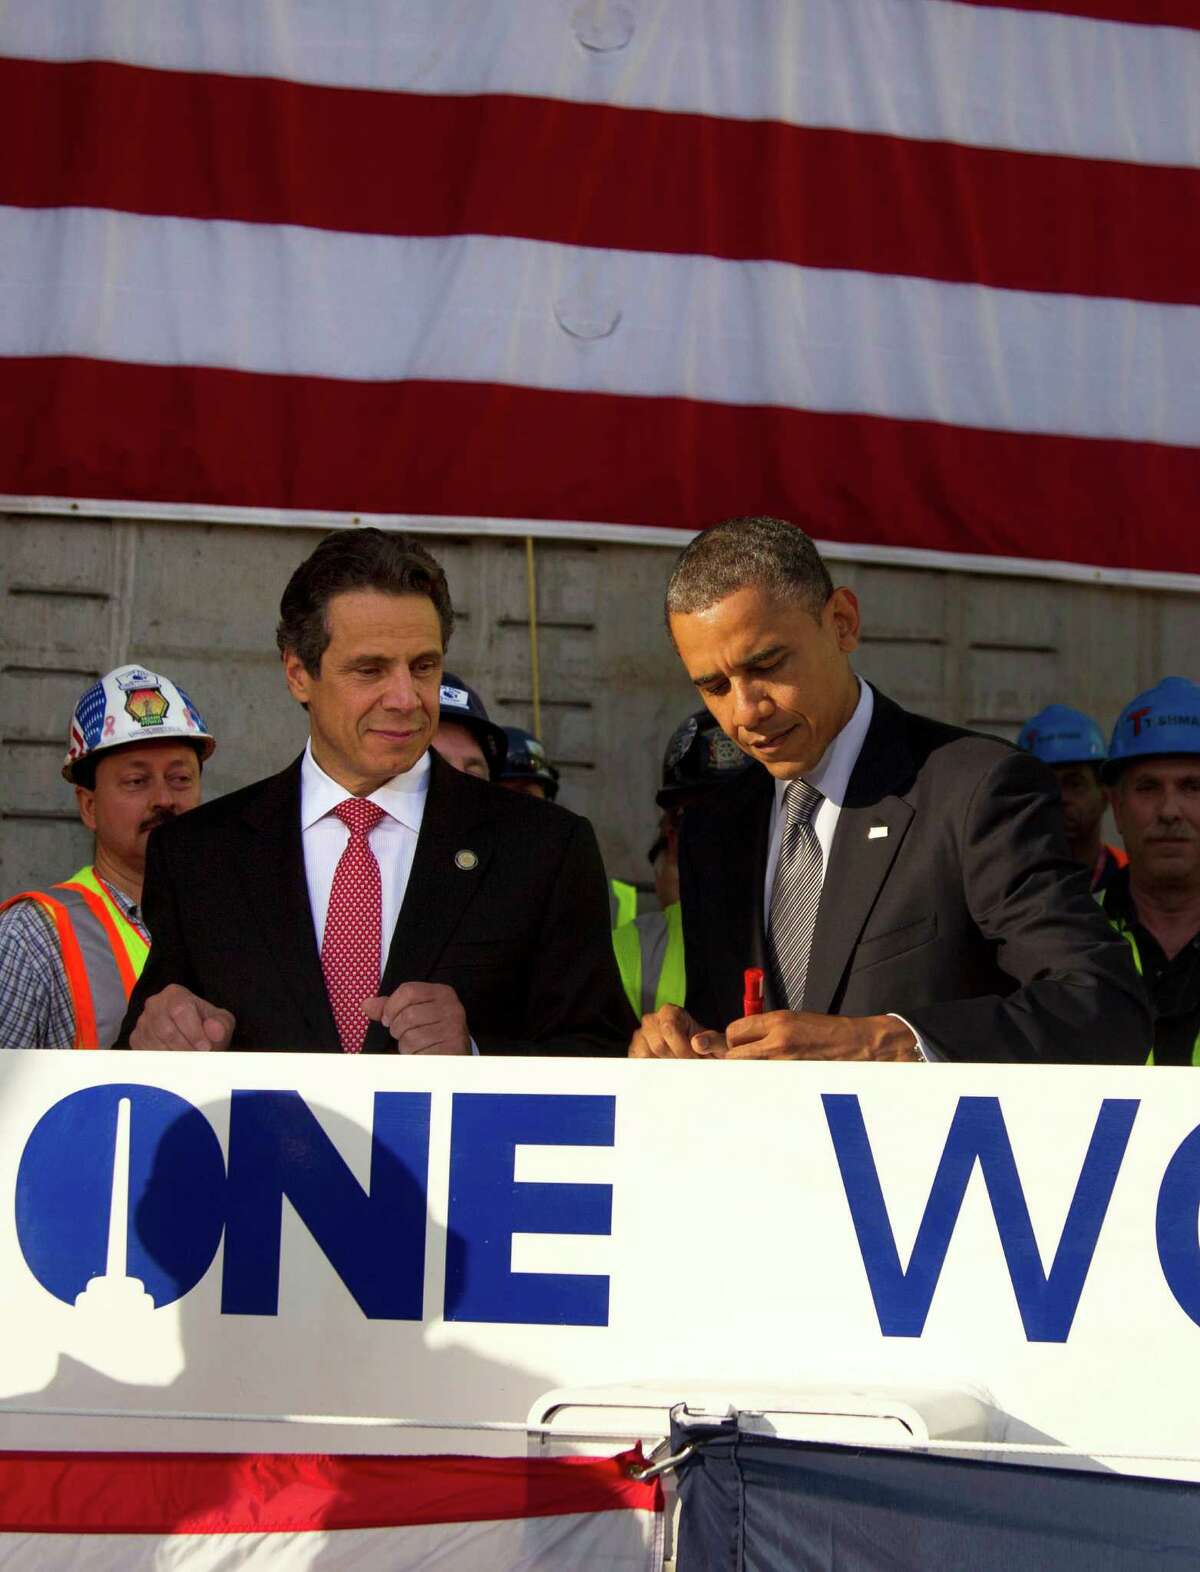 New York Gov. Andrew Cuomo watches as President Barack Obama signs a white steal beam as they visit the Port Authority of New York and New Jersey's World Trade Center site for a briefing on construction progress, Thursday, June 14, 2012, in New York. (AP Photo/Carolyn Kaster)